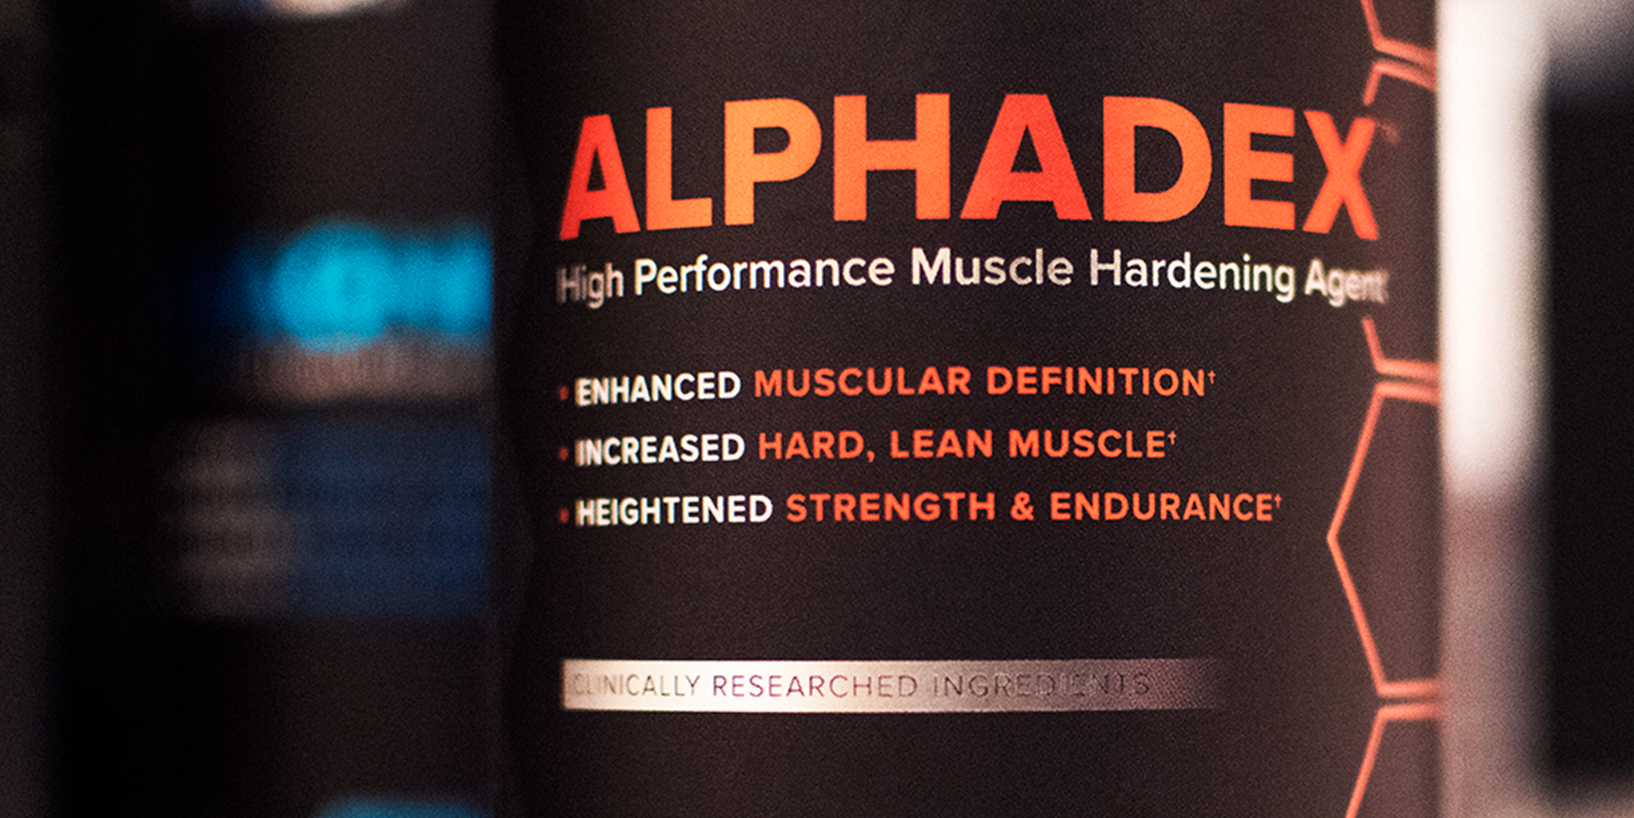 bottle of Alphadex